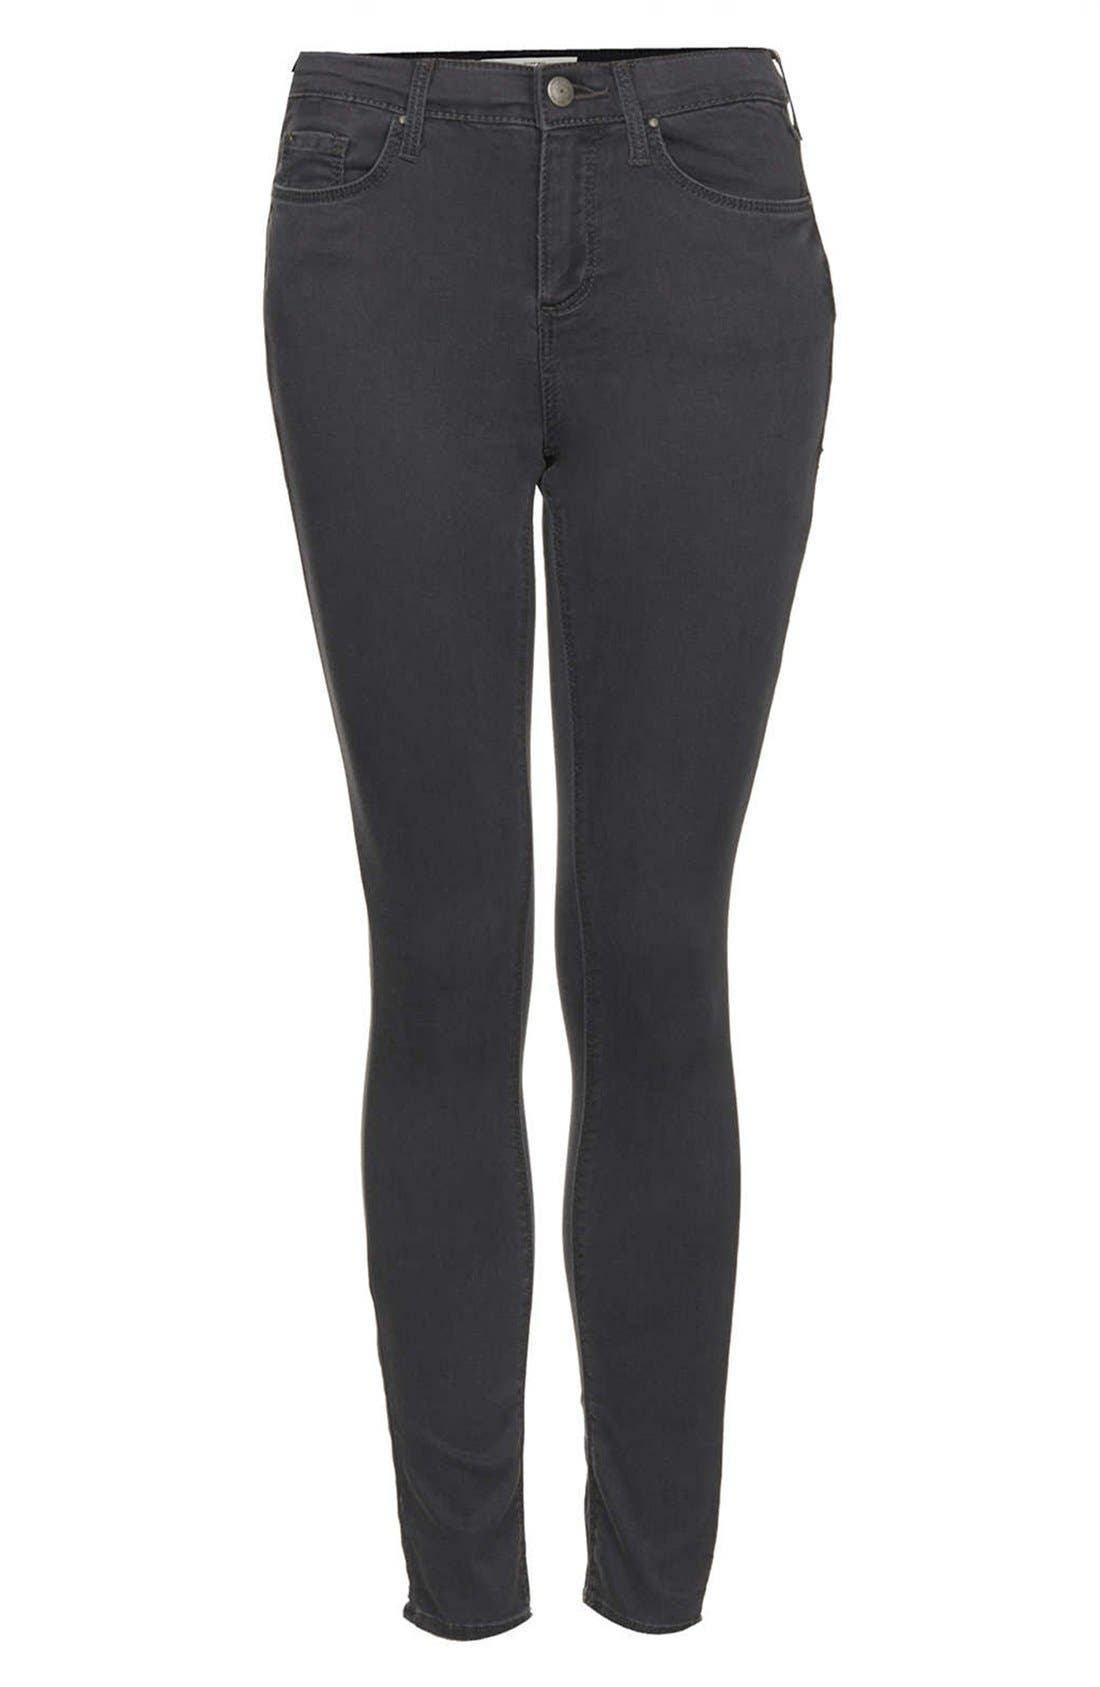 Alternate Image 3  - Topshop Moto 'Leigh' Skinny Jeans (Regular & Short)